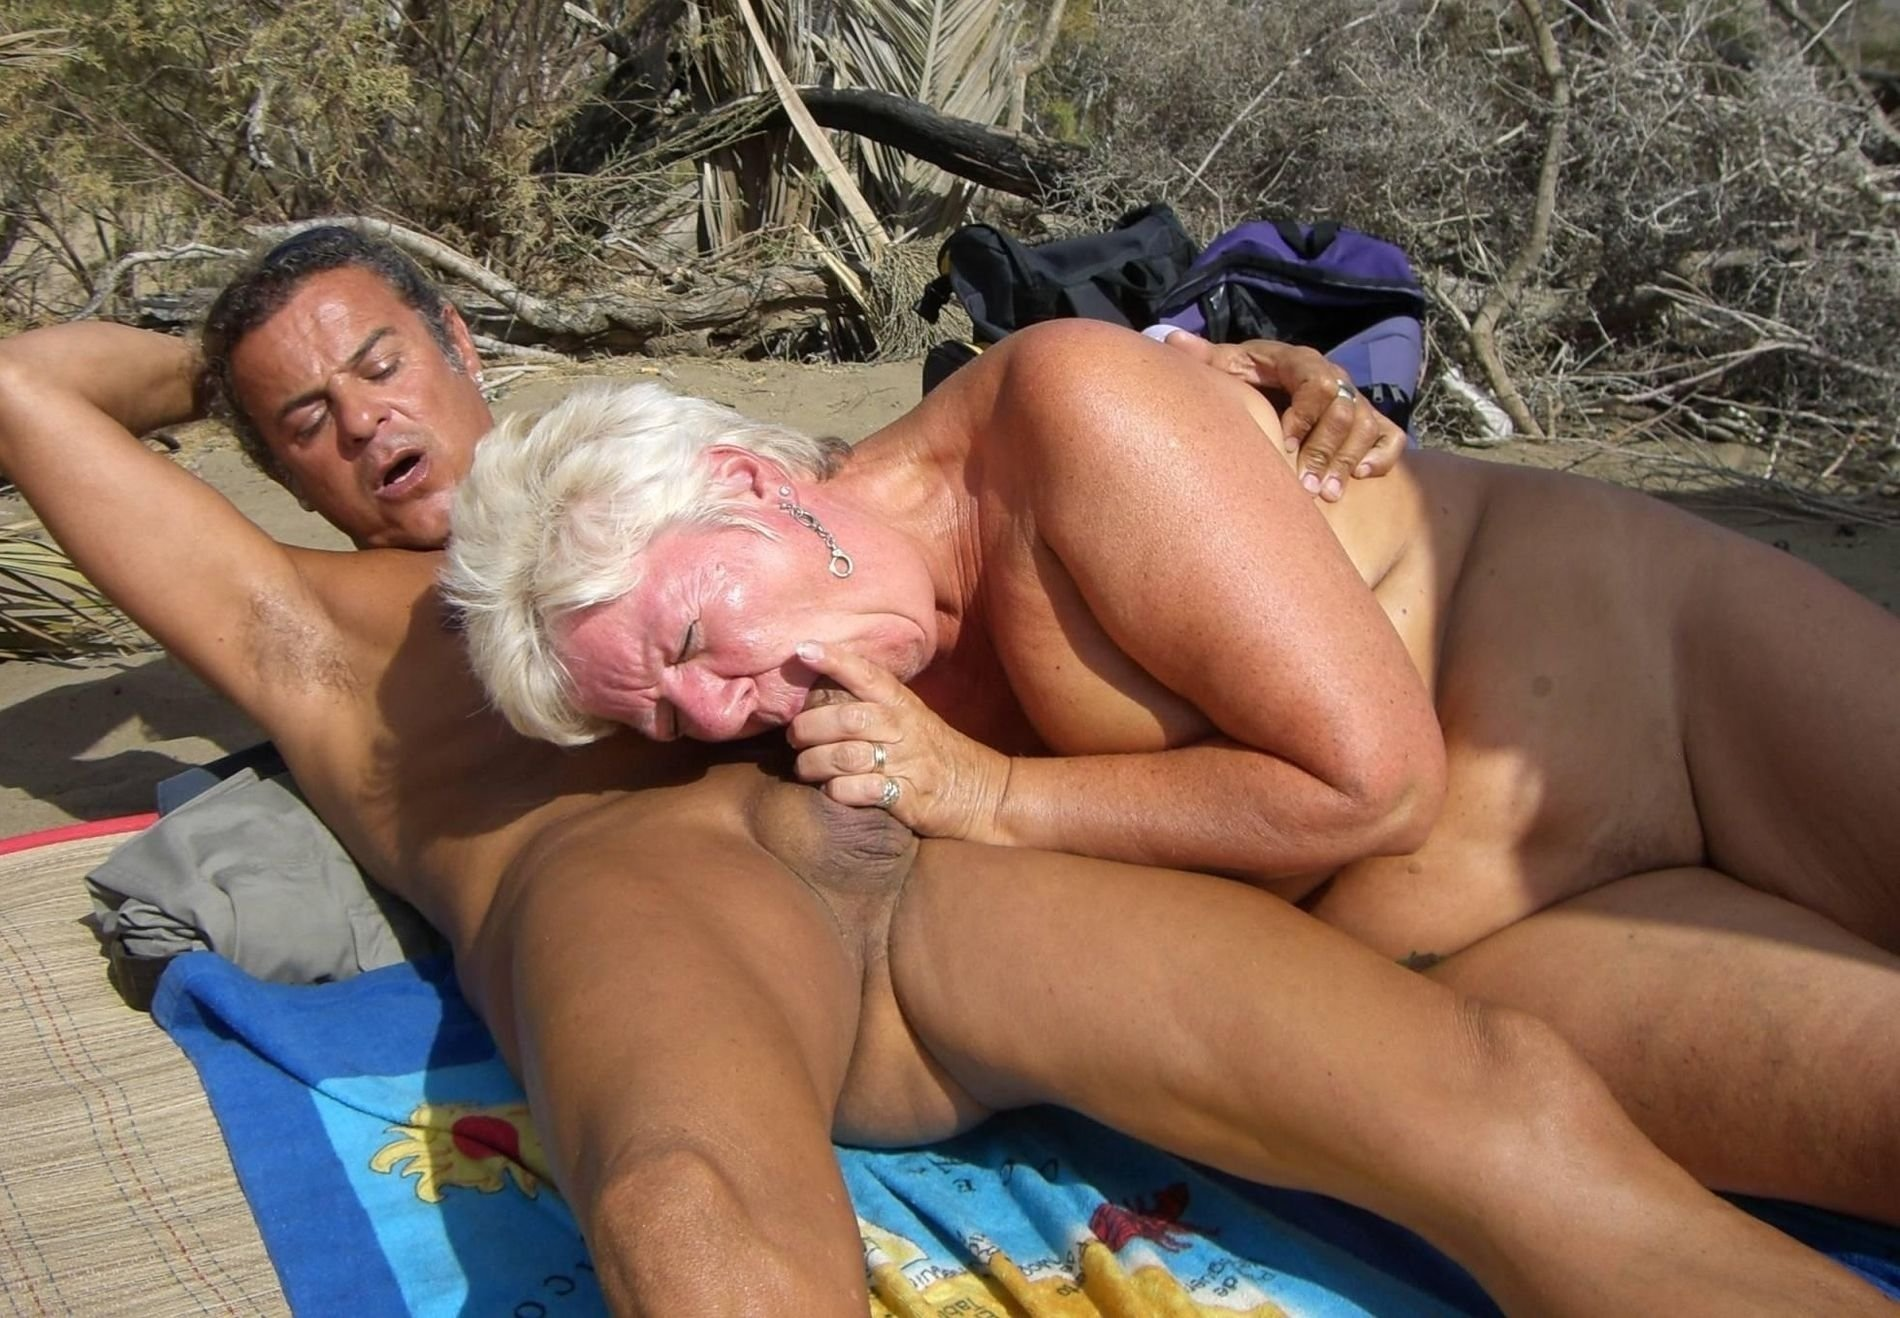 Old lady fucked by young guy gifs hq porn pics